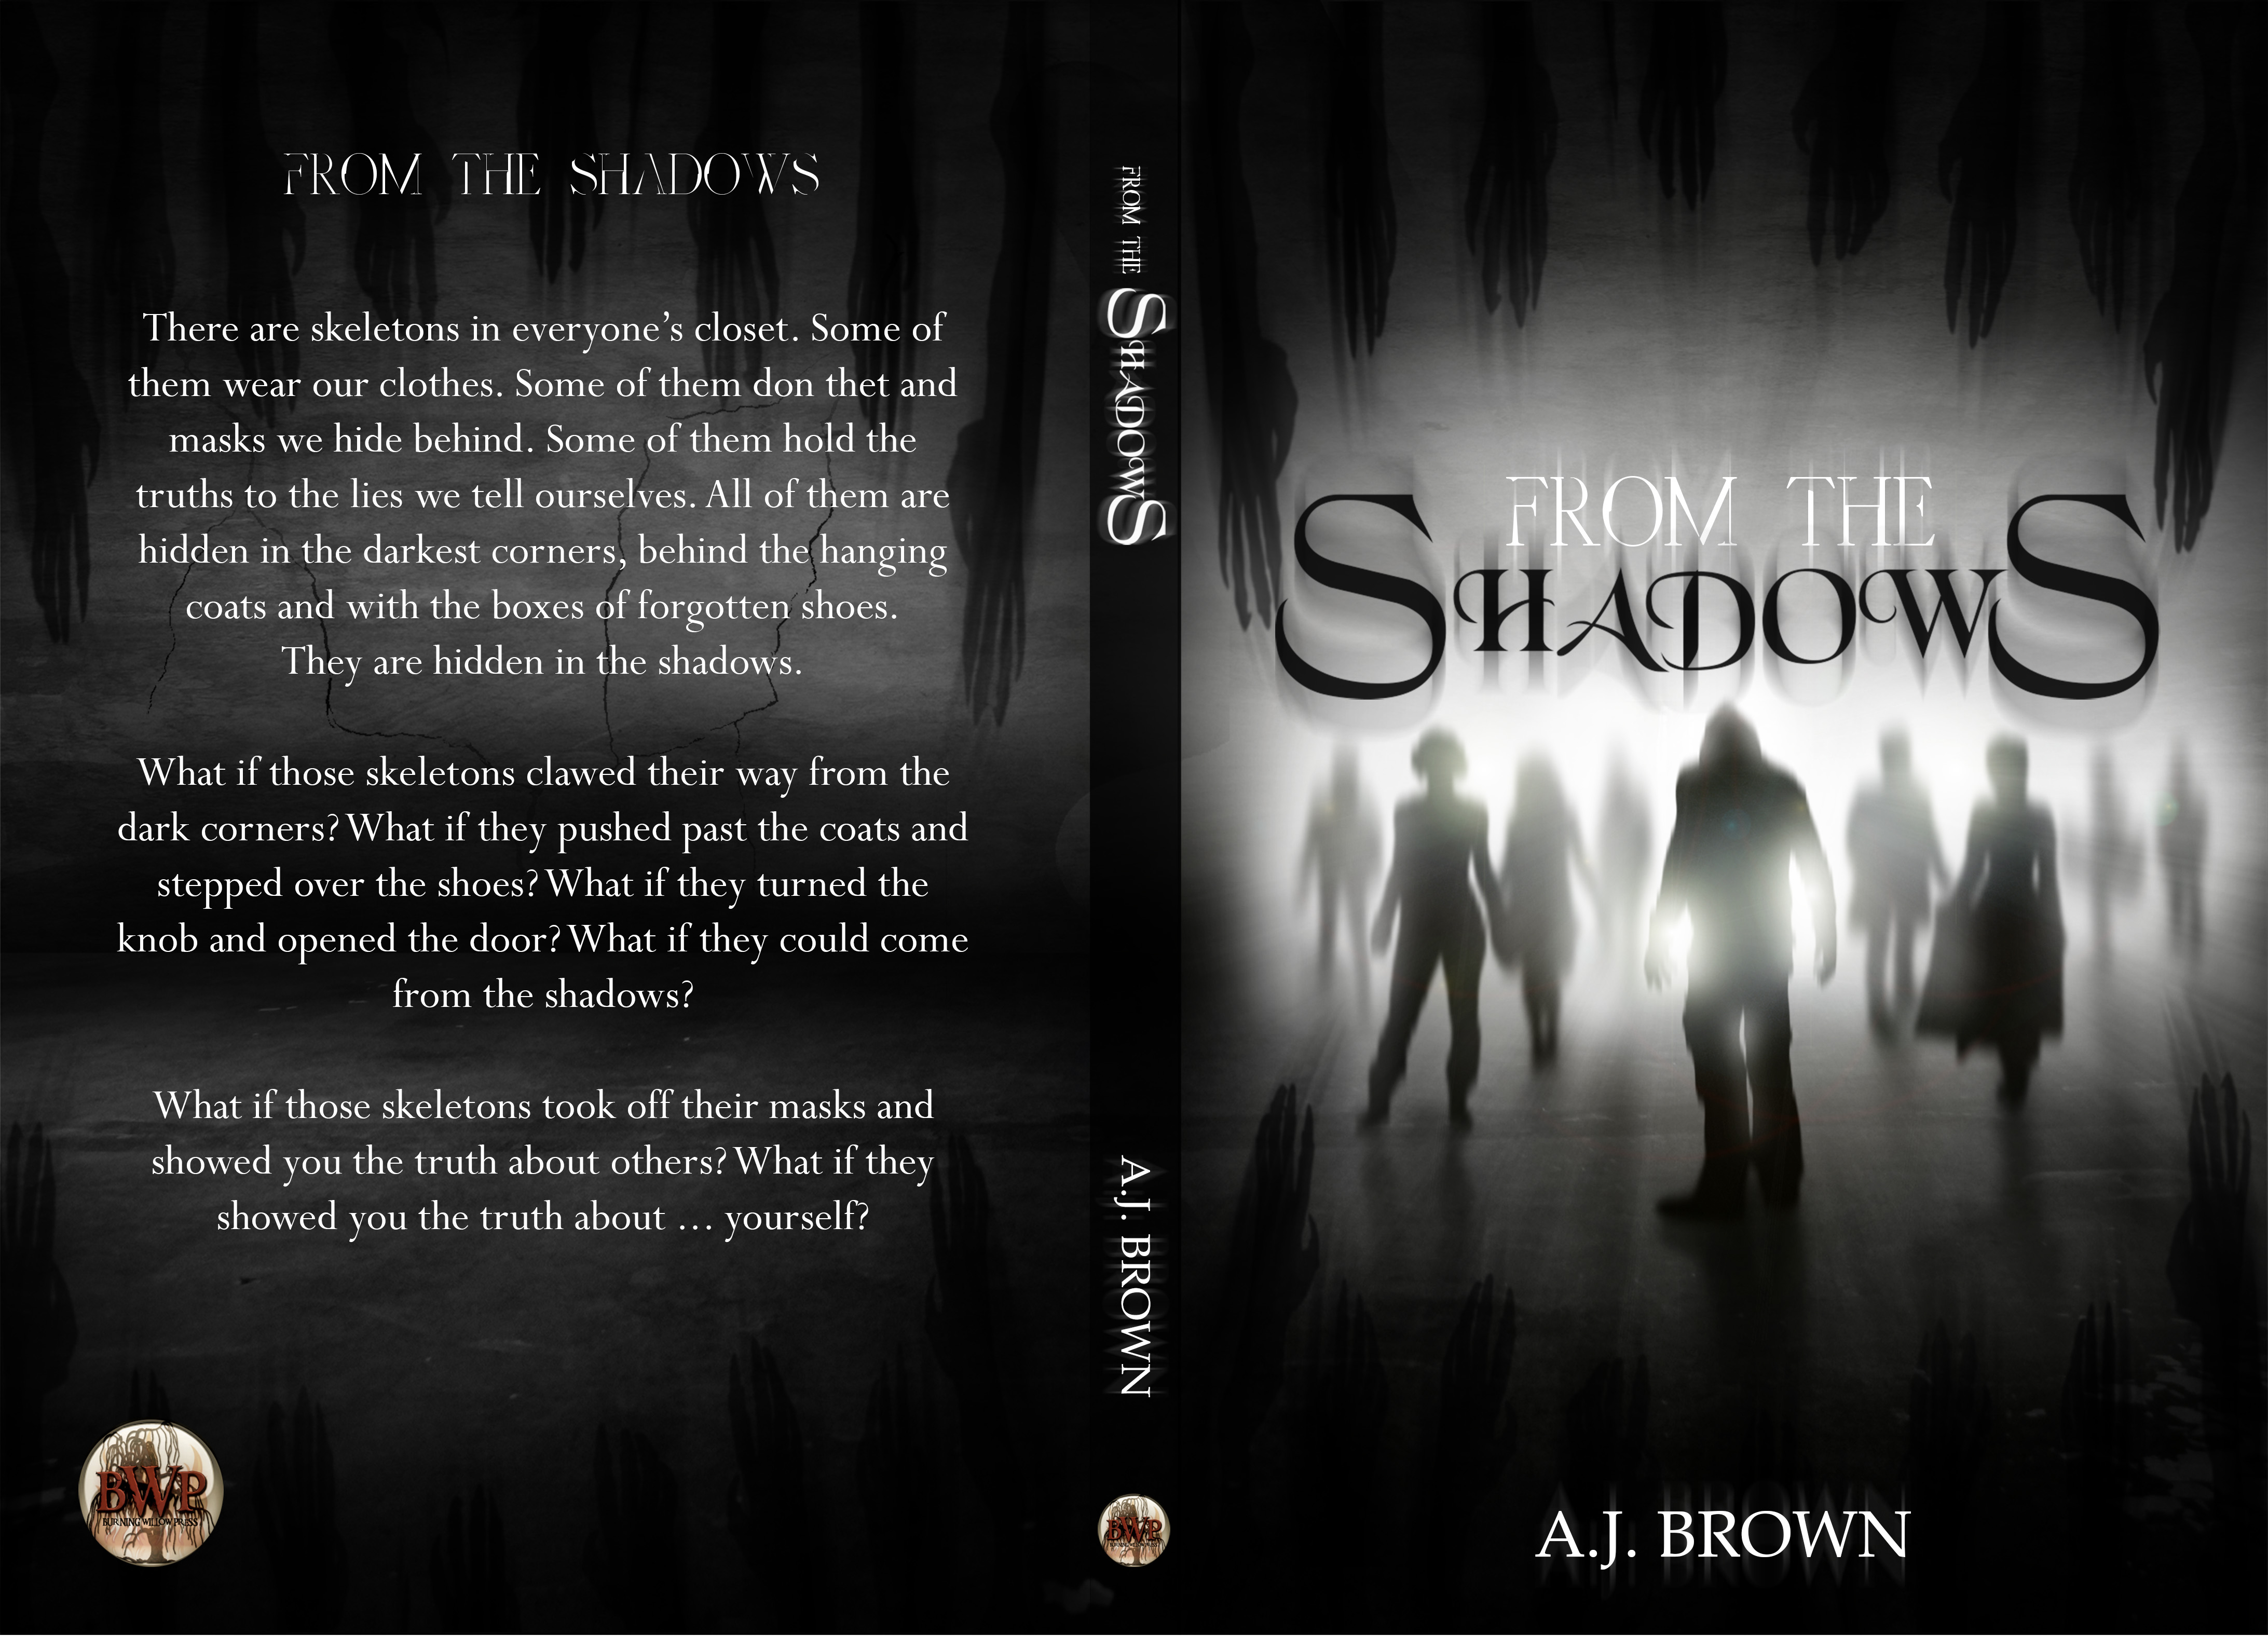 from the shadows - AJ BROWN